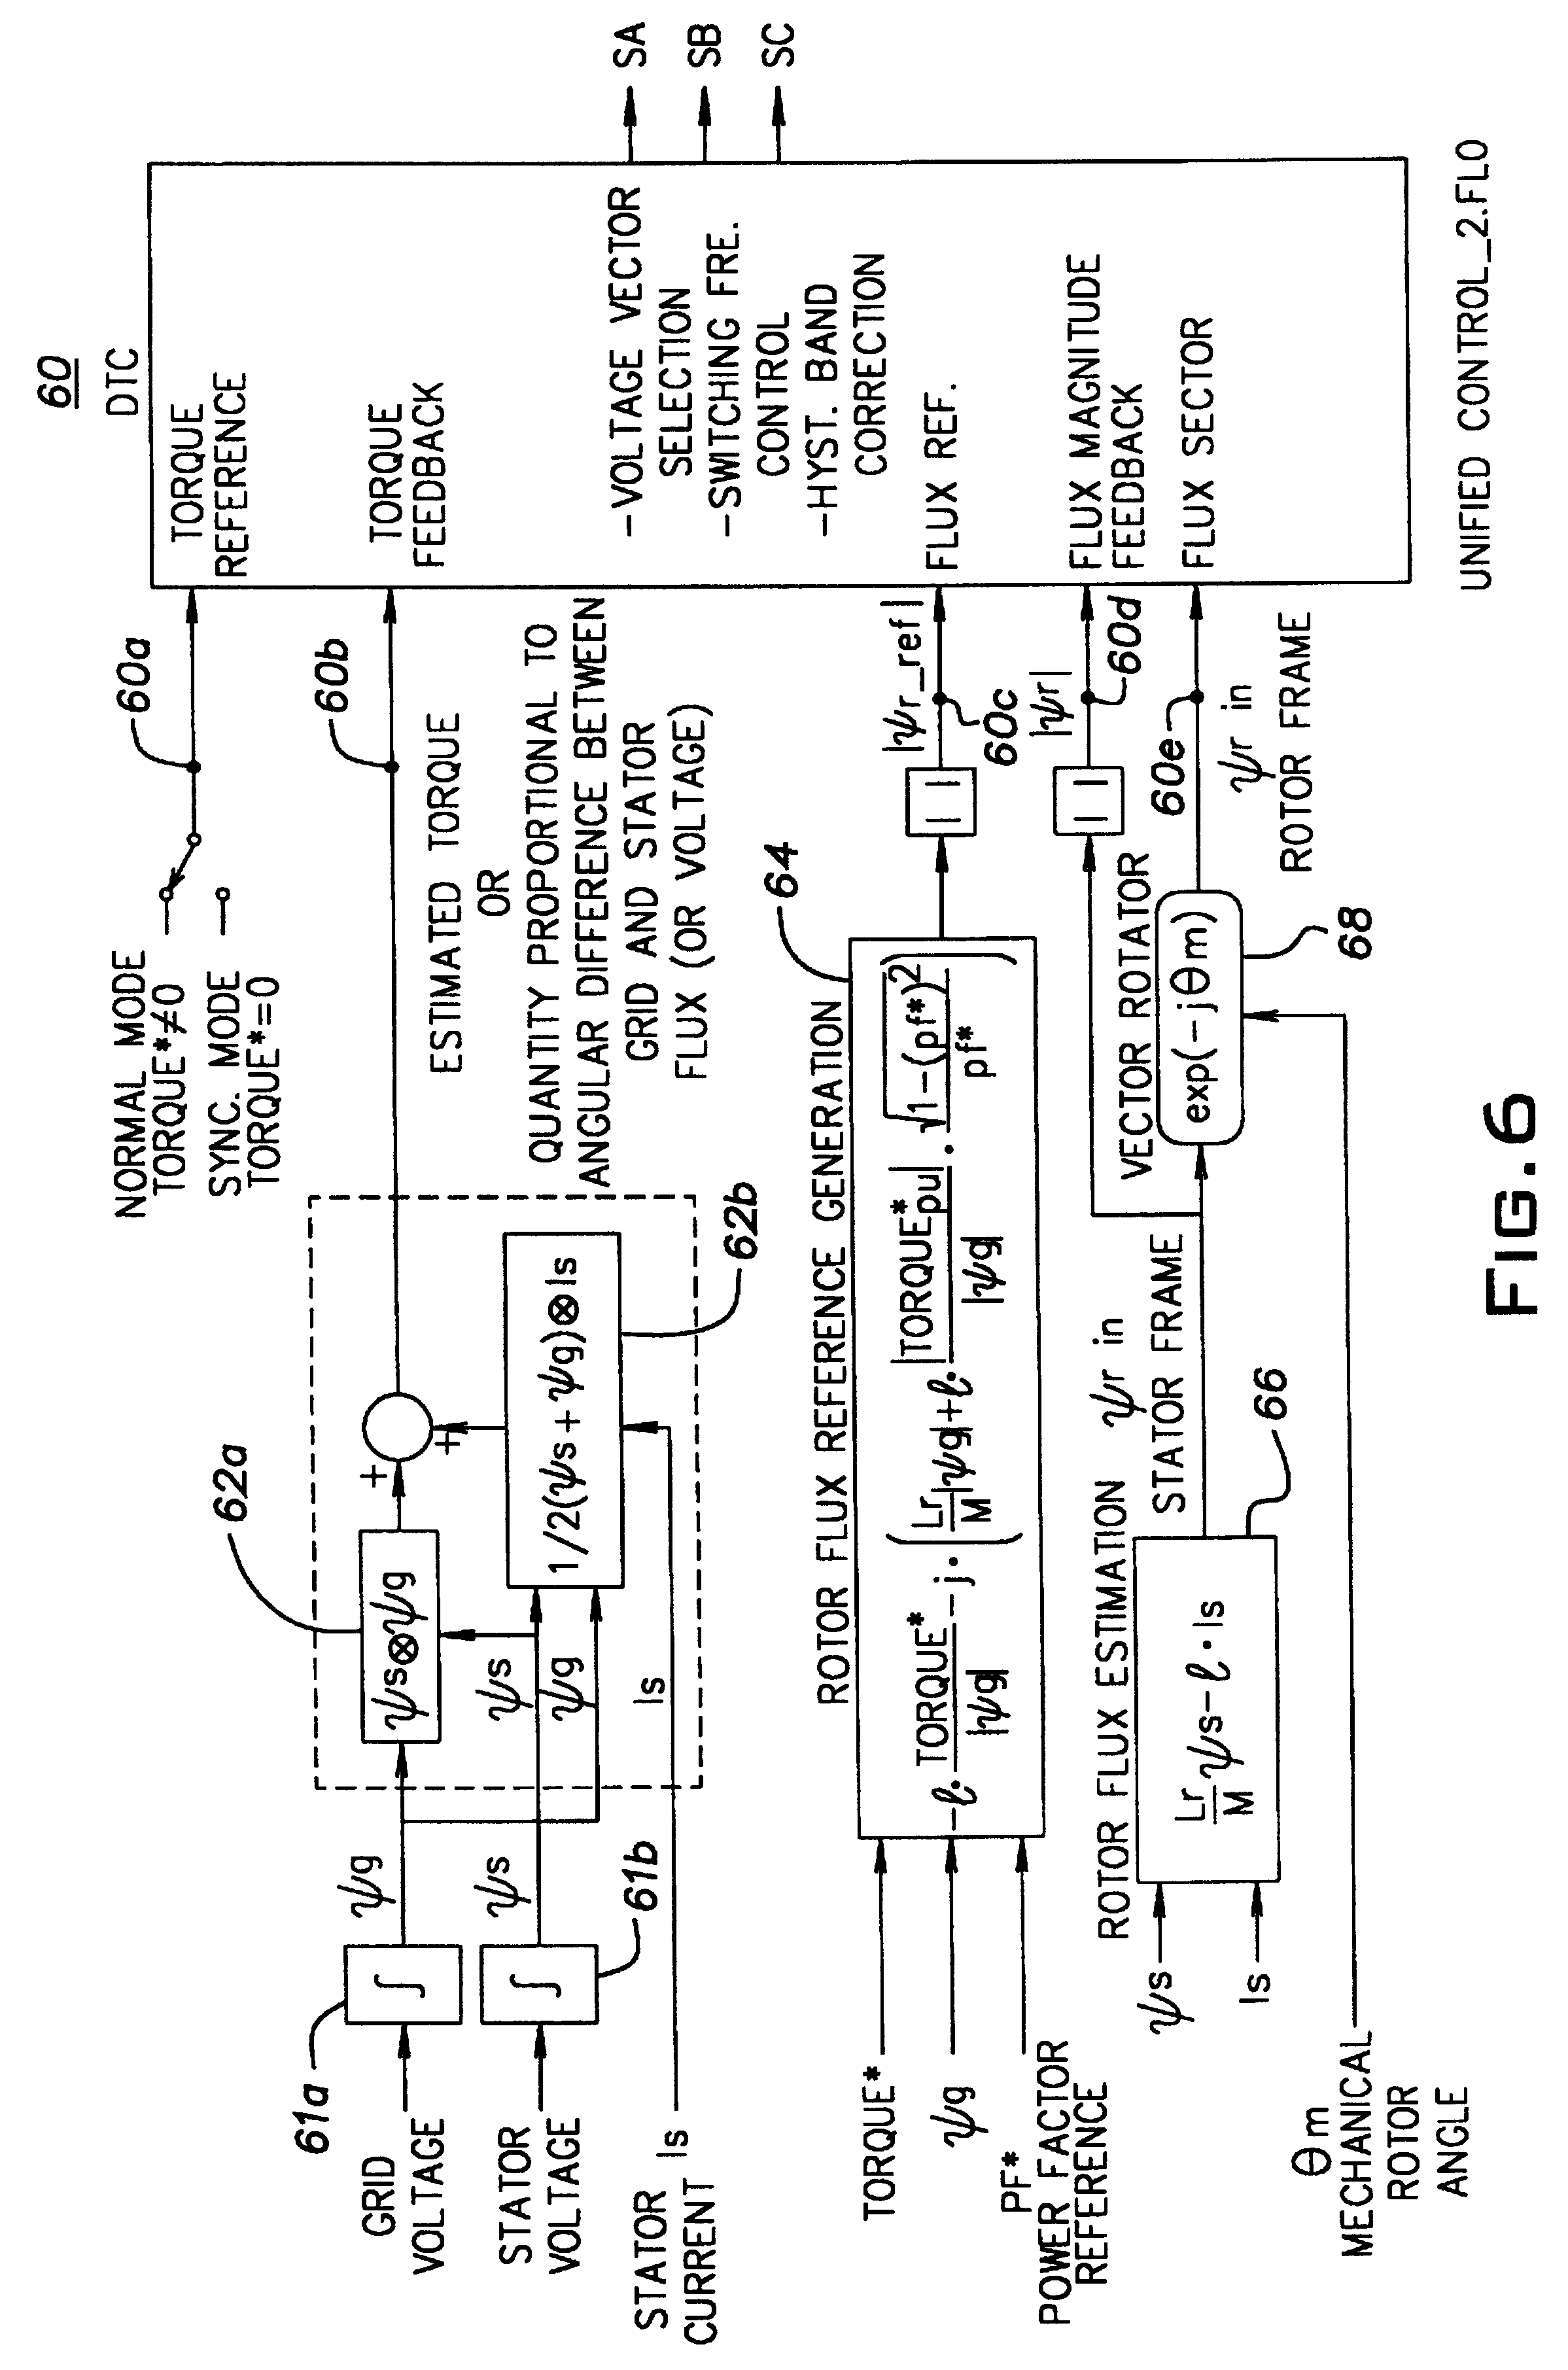 Wiring Diagram Slip Ring Motor Resistance Starter : Patent us controller for a wound rotor slip ring